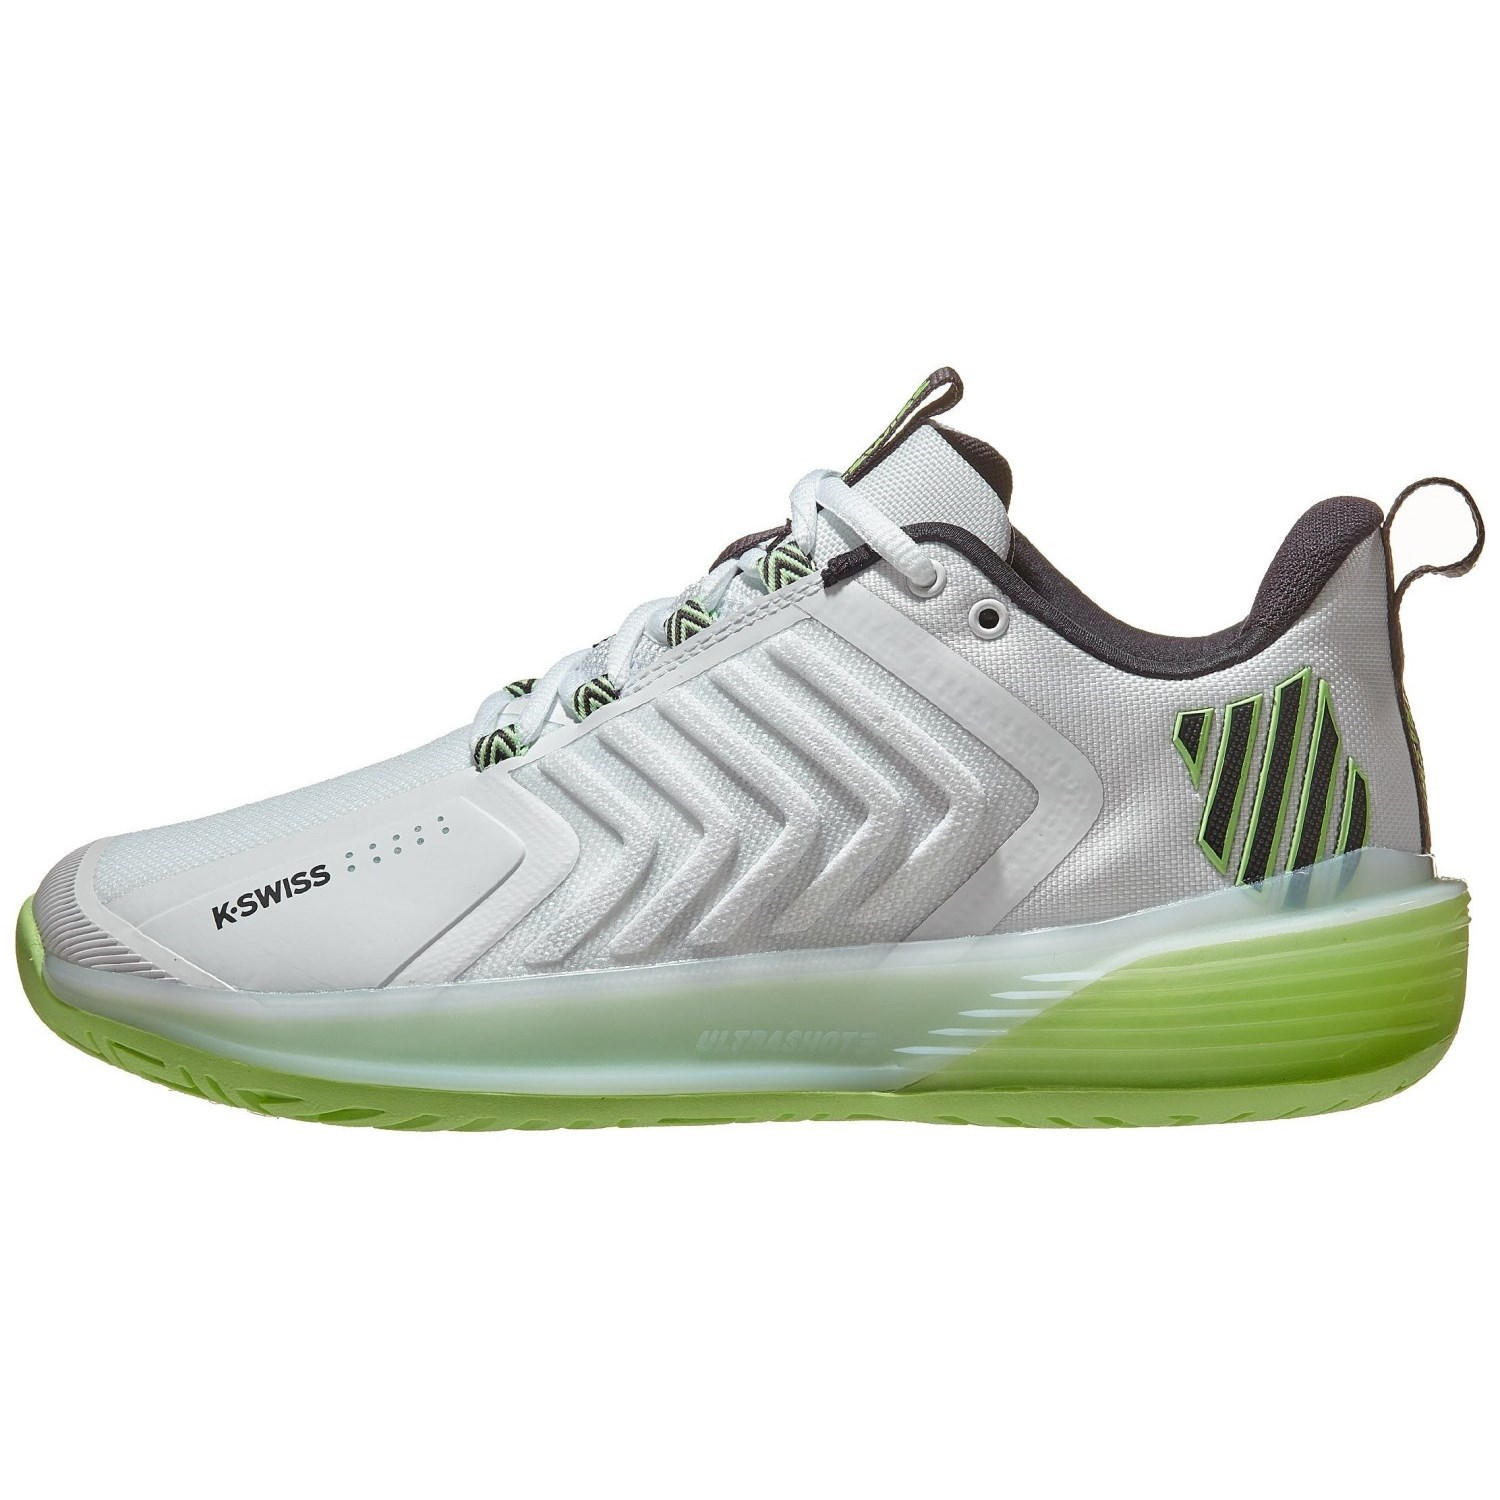 K-Swiss Ultrashot 3 Mens Tennis Shoes – White/Soft Neon Green/Blue Graphite